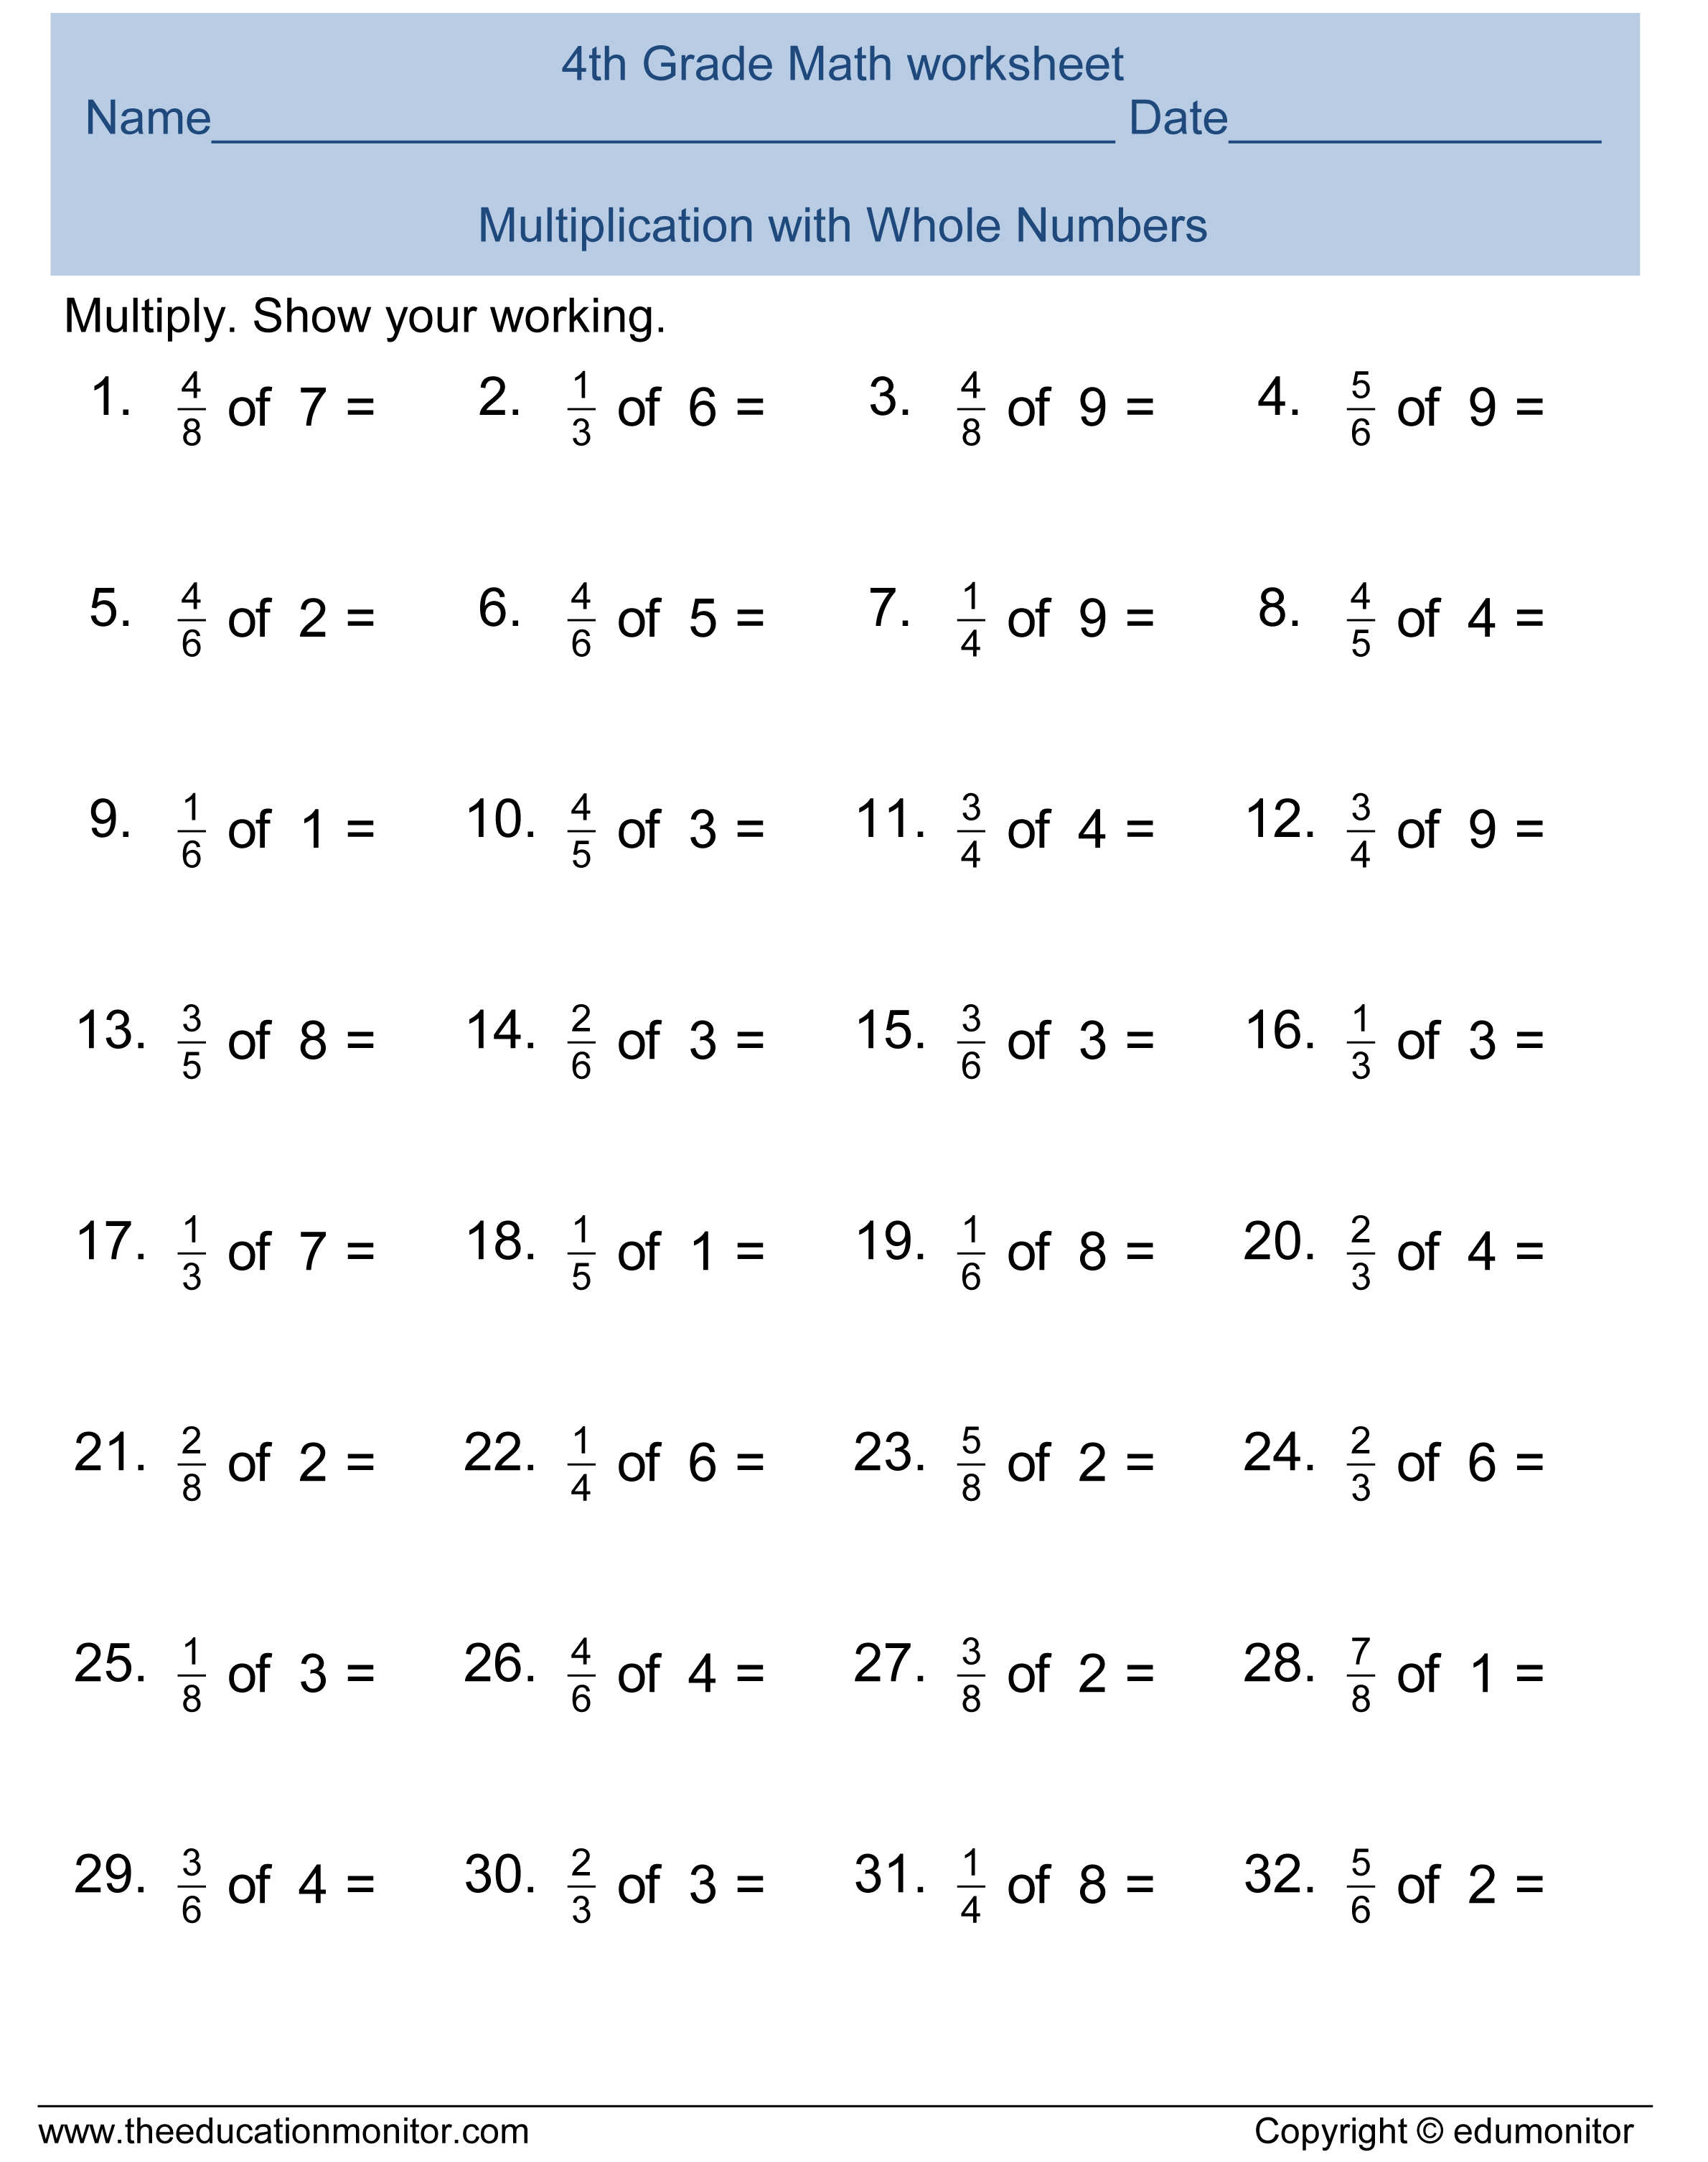 Free Worksheet 5th Grade Math Fraction Worksheets fractions worksheets forrd grade fraction activities learn multiplying worksheet categories fourth grade